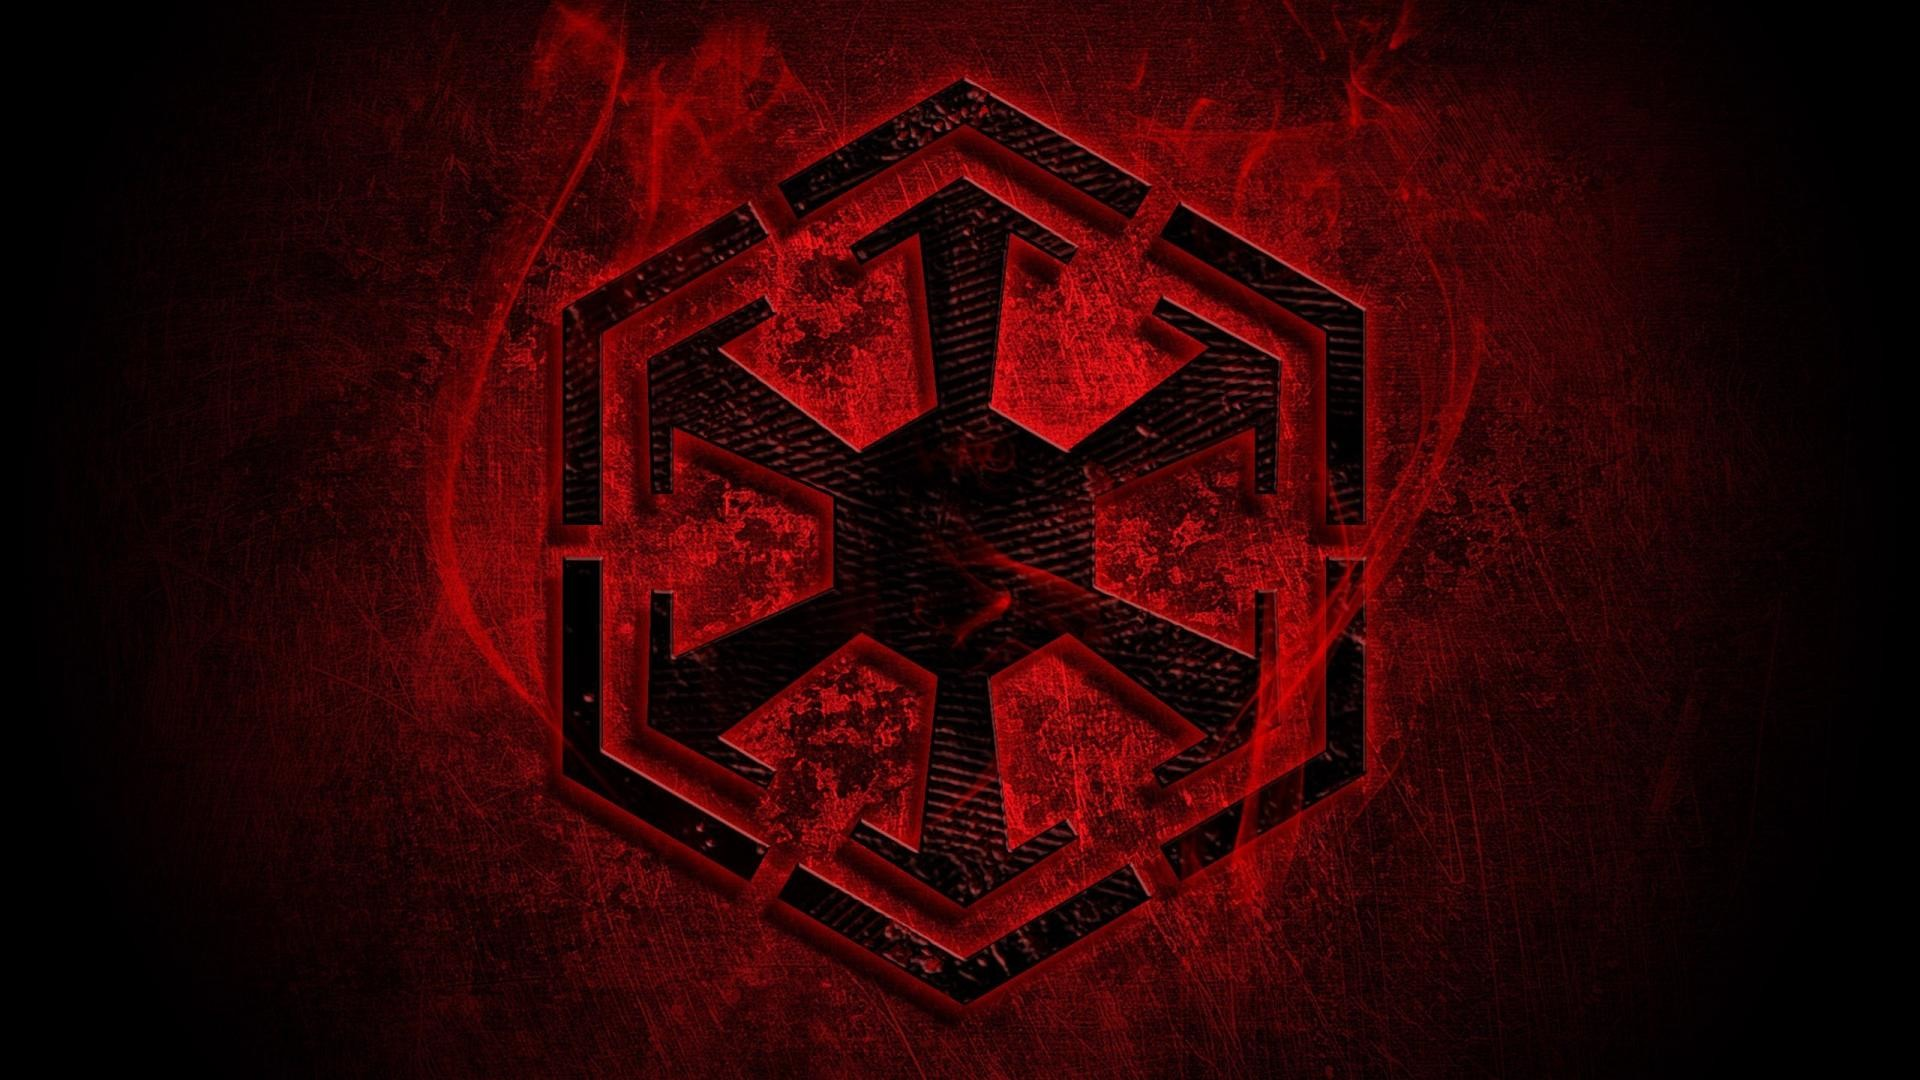 Res: 1920x1080, Star Wars Sith Pictures